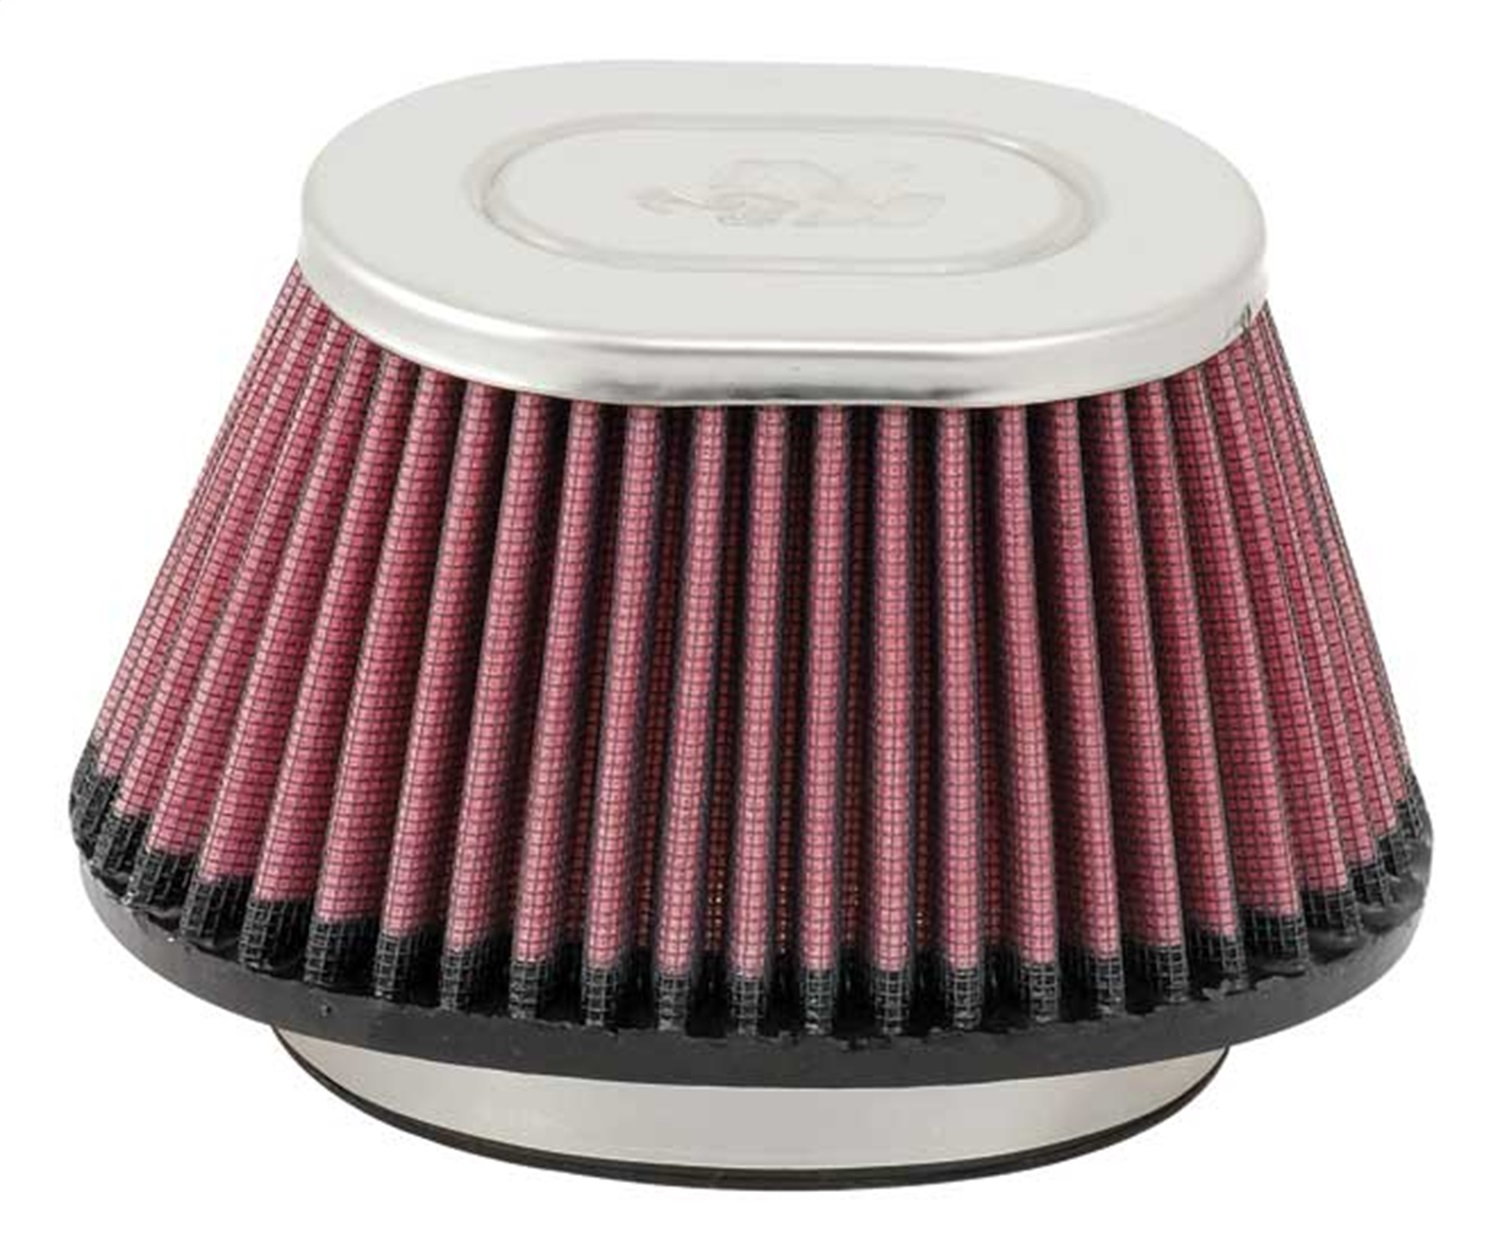 K N Re 0930 Universal Clamp On Air Filter Universal Air: K&N Filters RC-5004 Oval Cone Air Filter Fits GM TPI/LT1